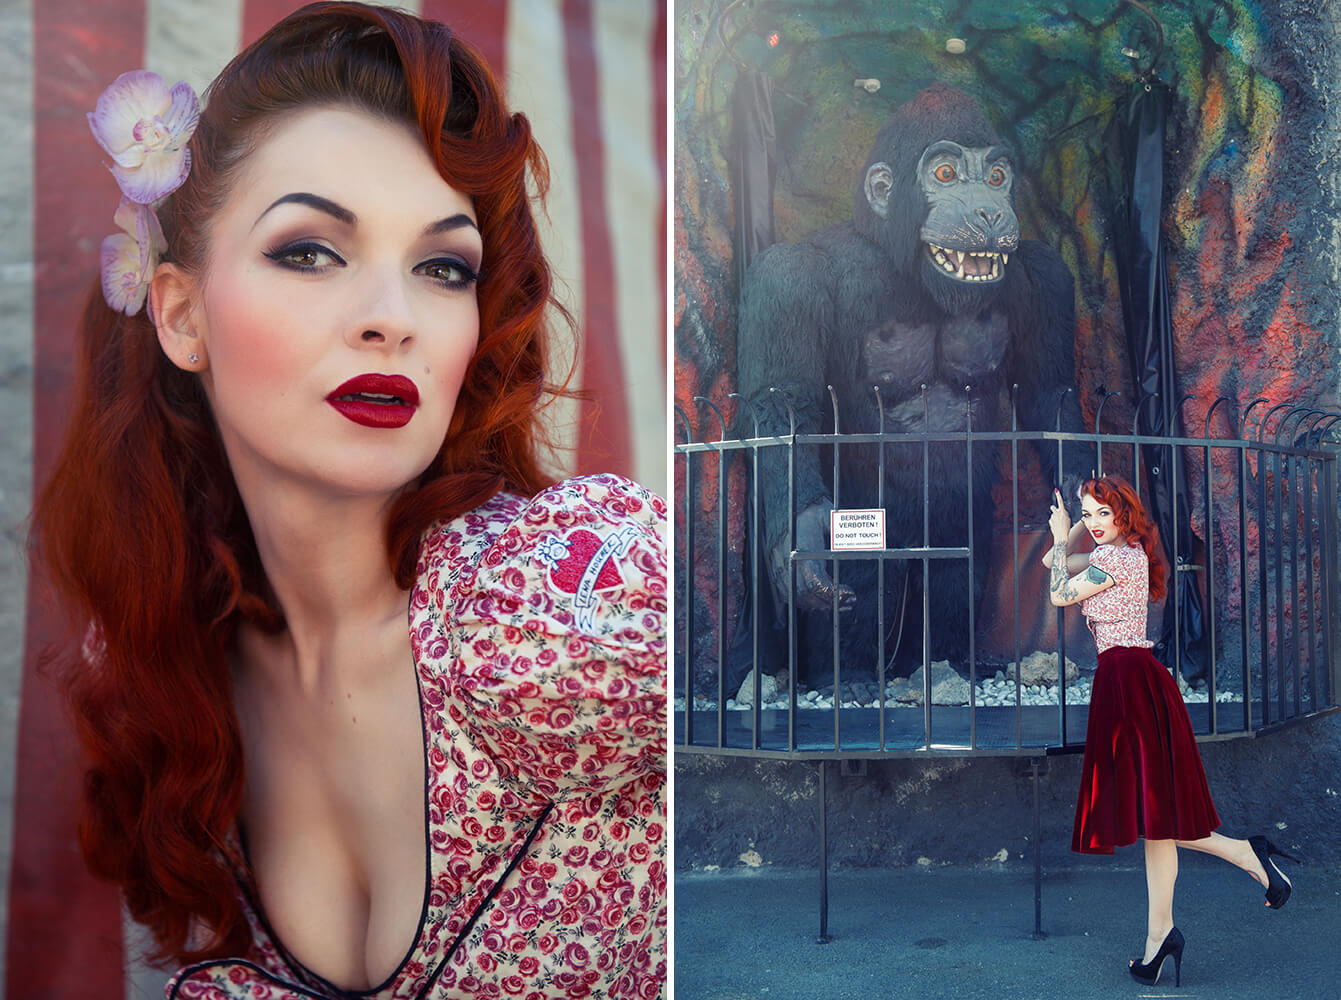 ursula schmitz, joan, prater, wien, shooting, fotografie, angebot, vintage, retro, lena hoschek, photos and the city, king kong